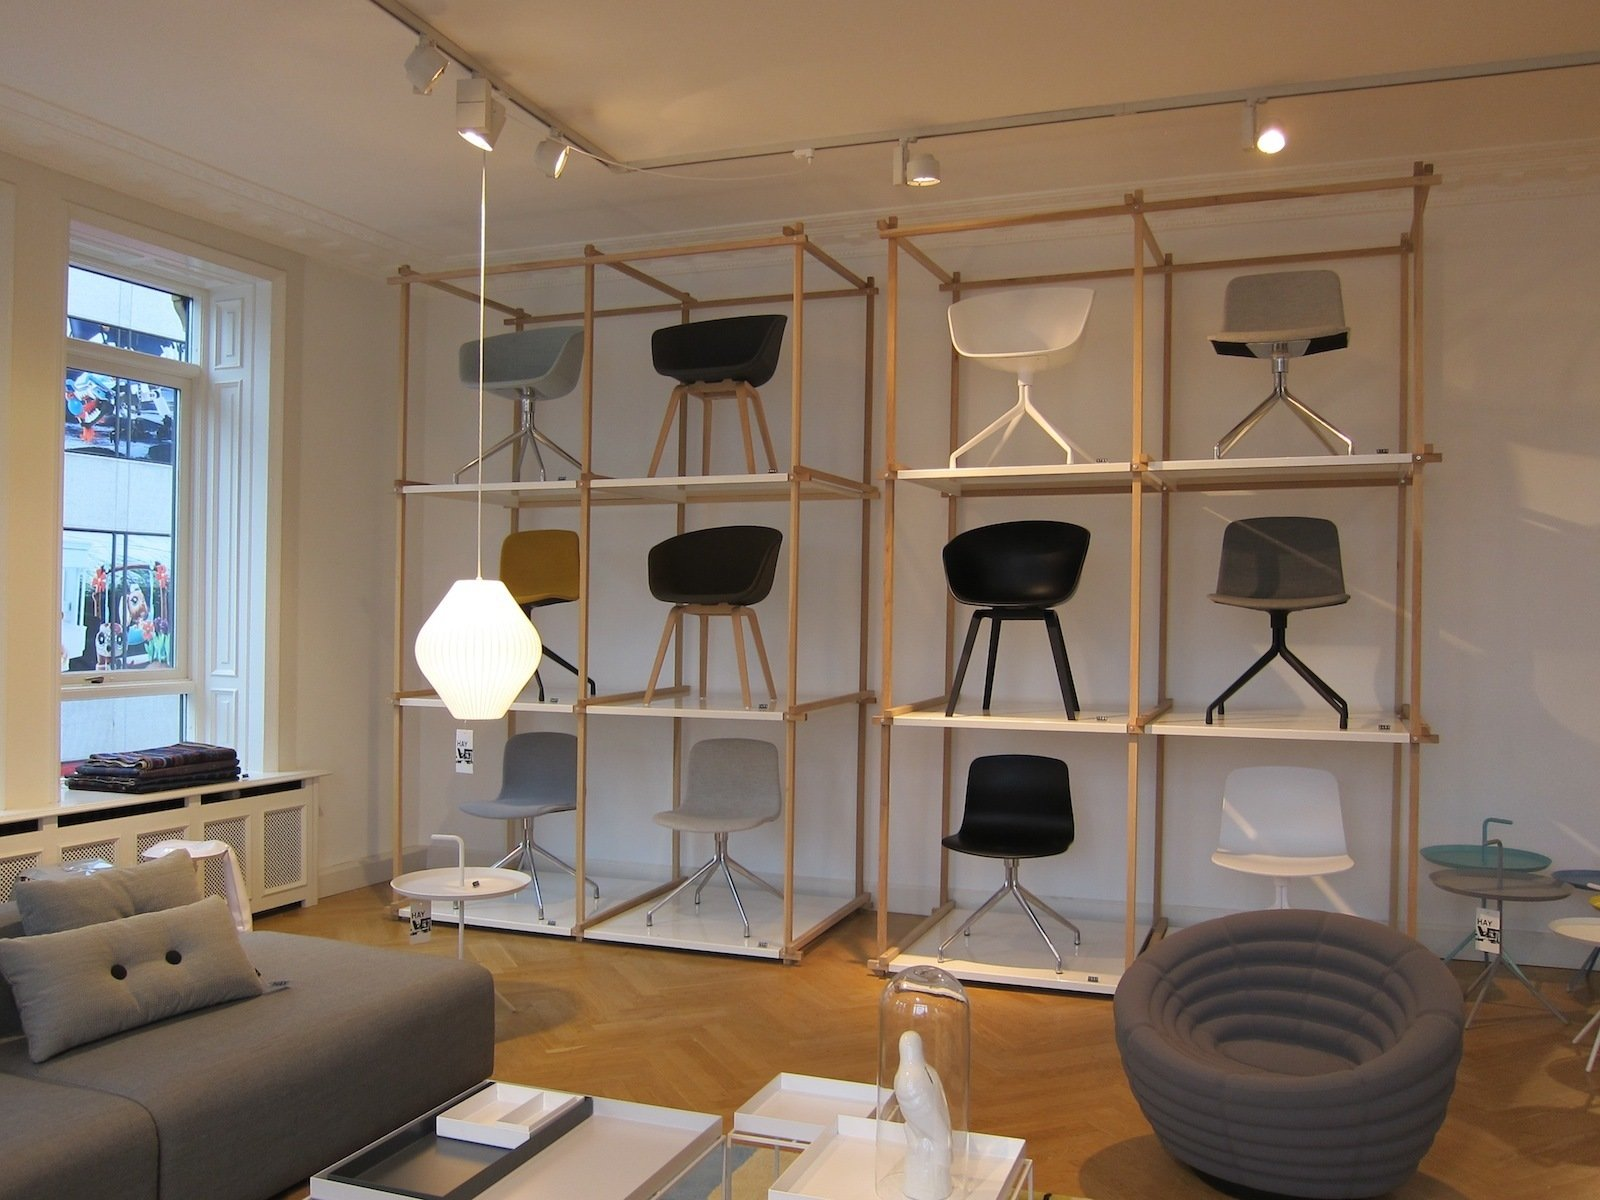 A grid-like display of chairs, with the upholstered foam Blow Chair by Foersom & Hiort-Lorenzen in the foreground.  A Visit to HAY Copenhagen by Jaime Gillin